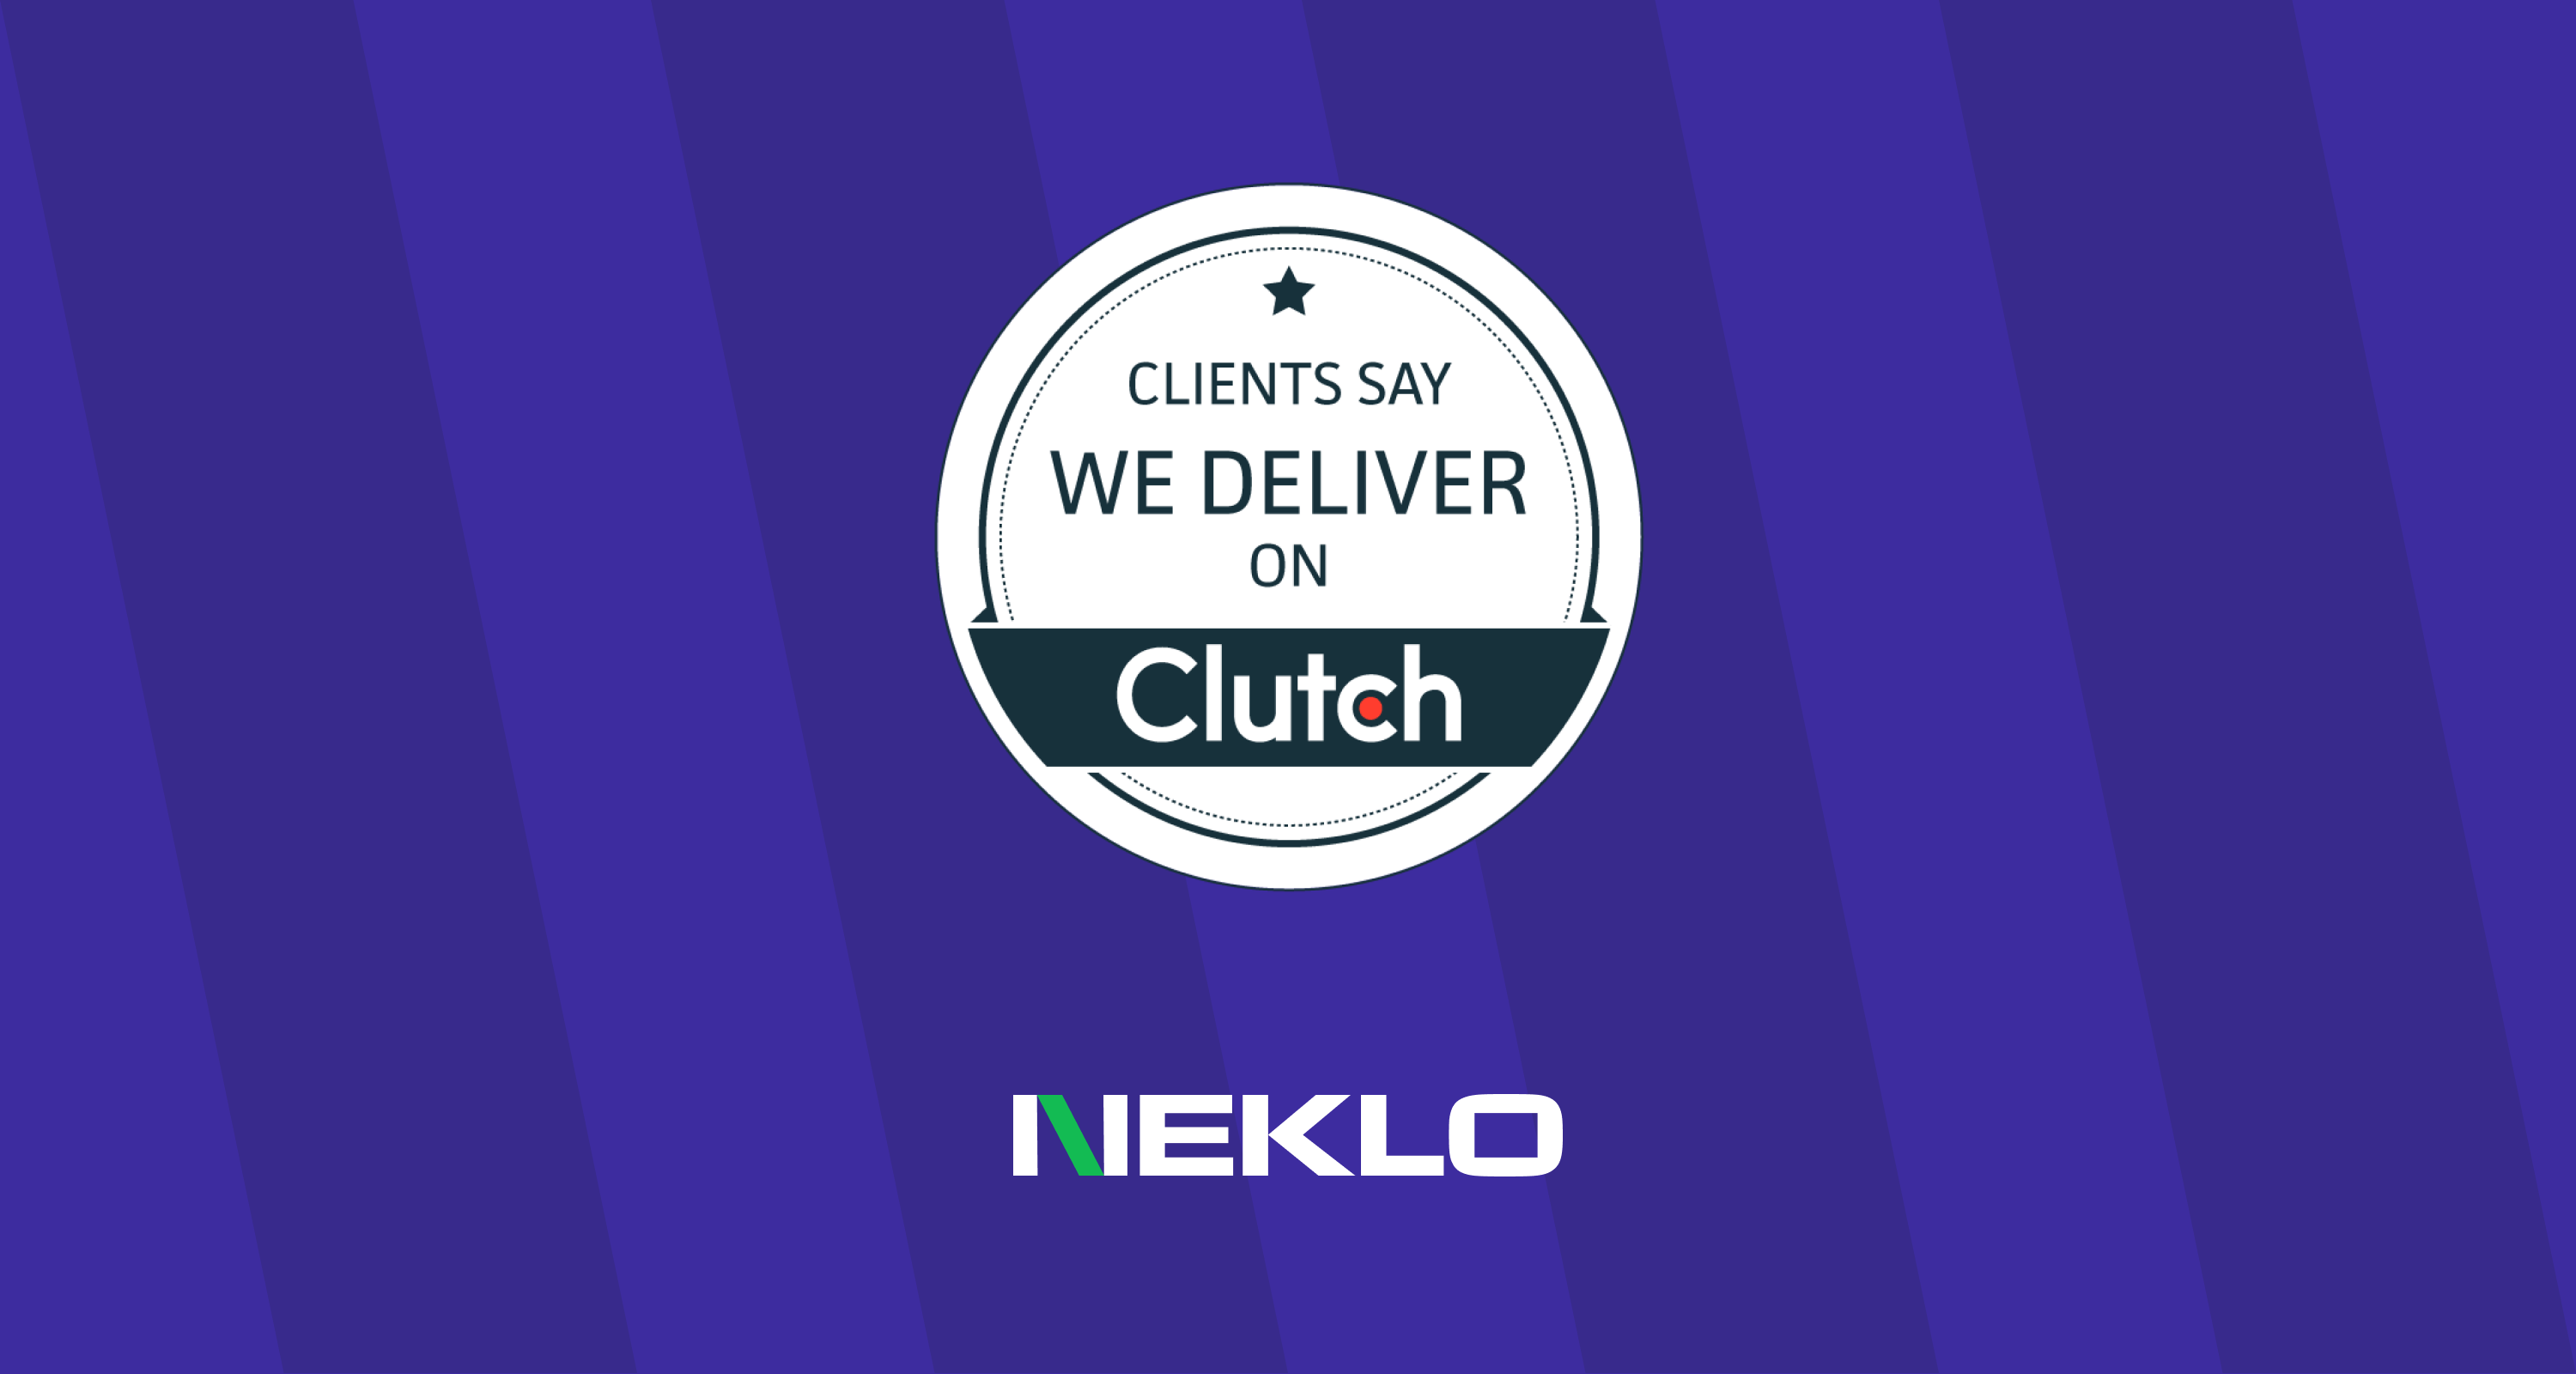 Custom software development company on clutch